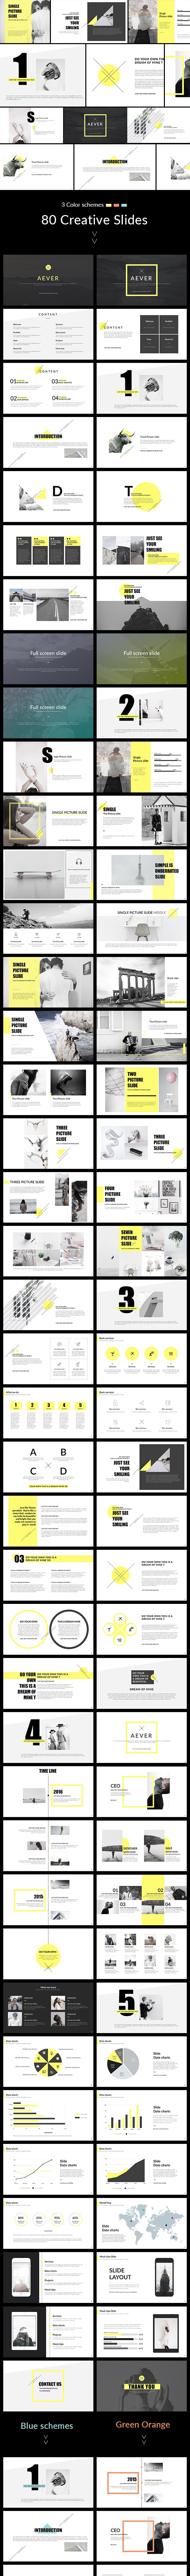 AEVER - PowerPoint Presentation Template - Creative PowerPoint Templates